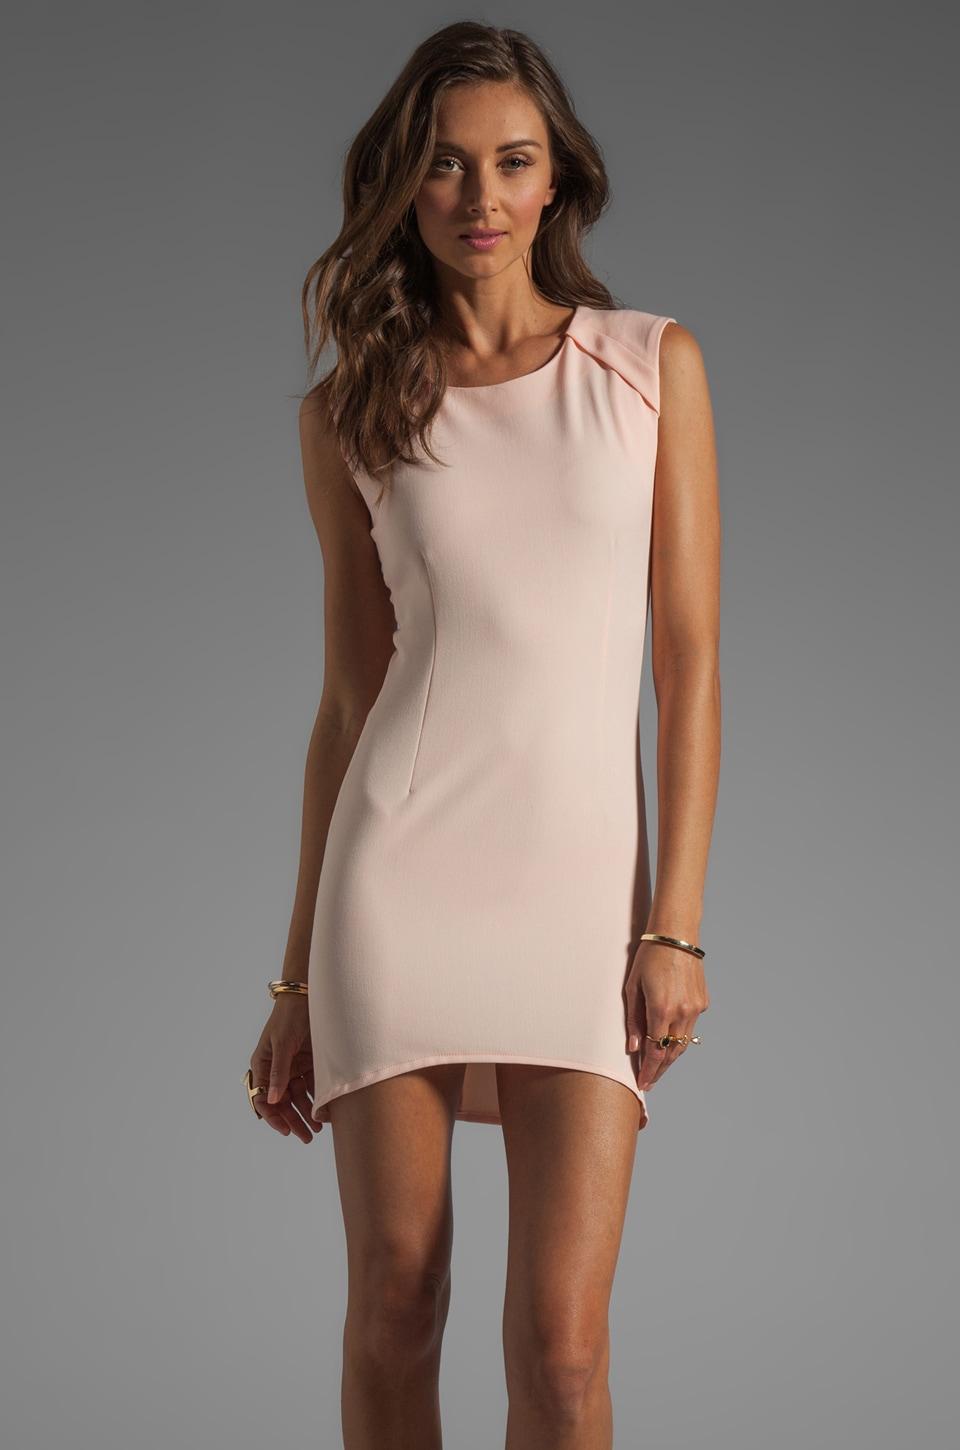 Shona Joy Right of Passage Body Con Dress in Ballet